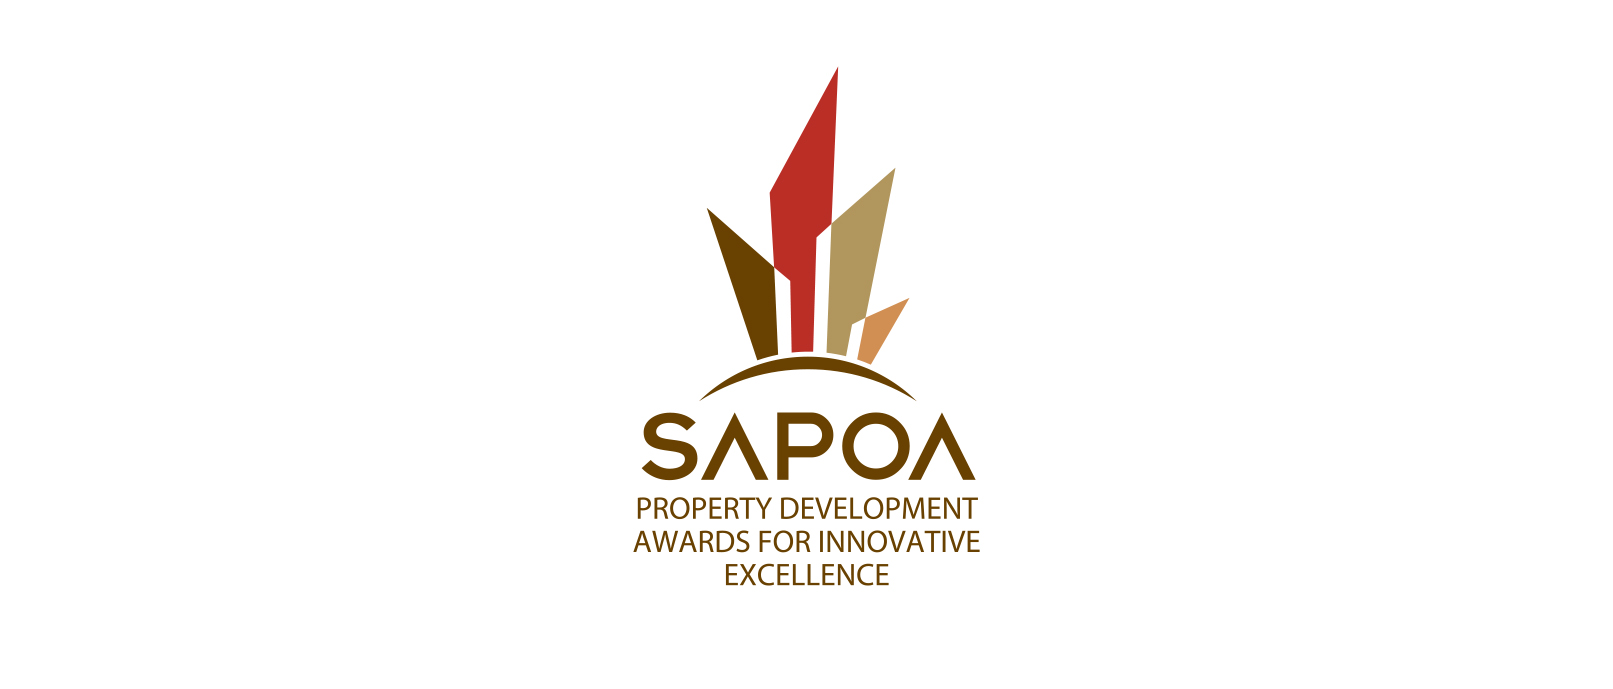 dhk wins three SAPOA Awards for Innovative Excellence including Overall Heritage Award